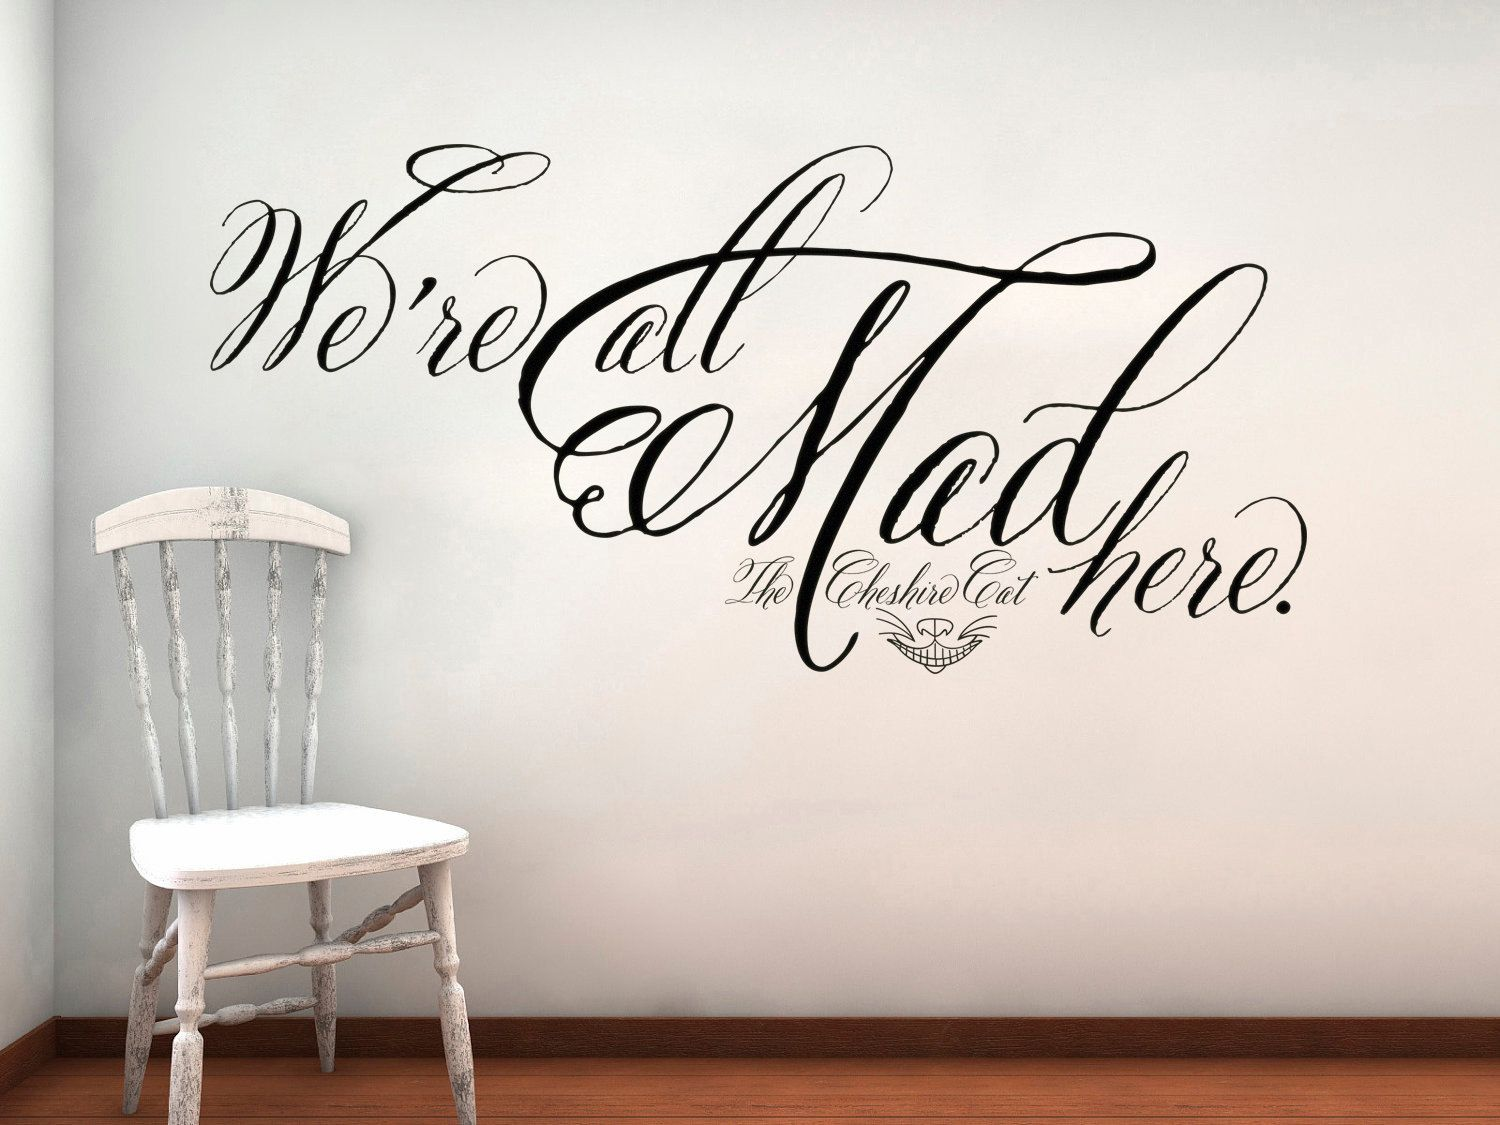 Alice in Wonderland Cheshire Cat We're All Mad Here Wall ...